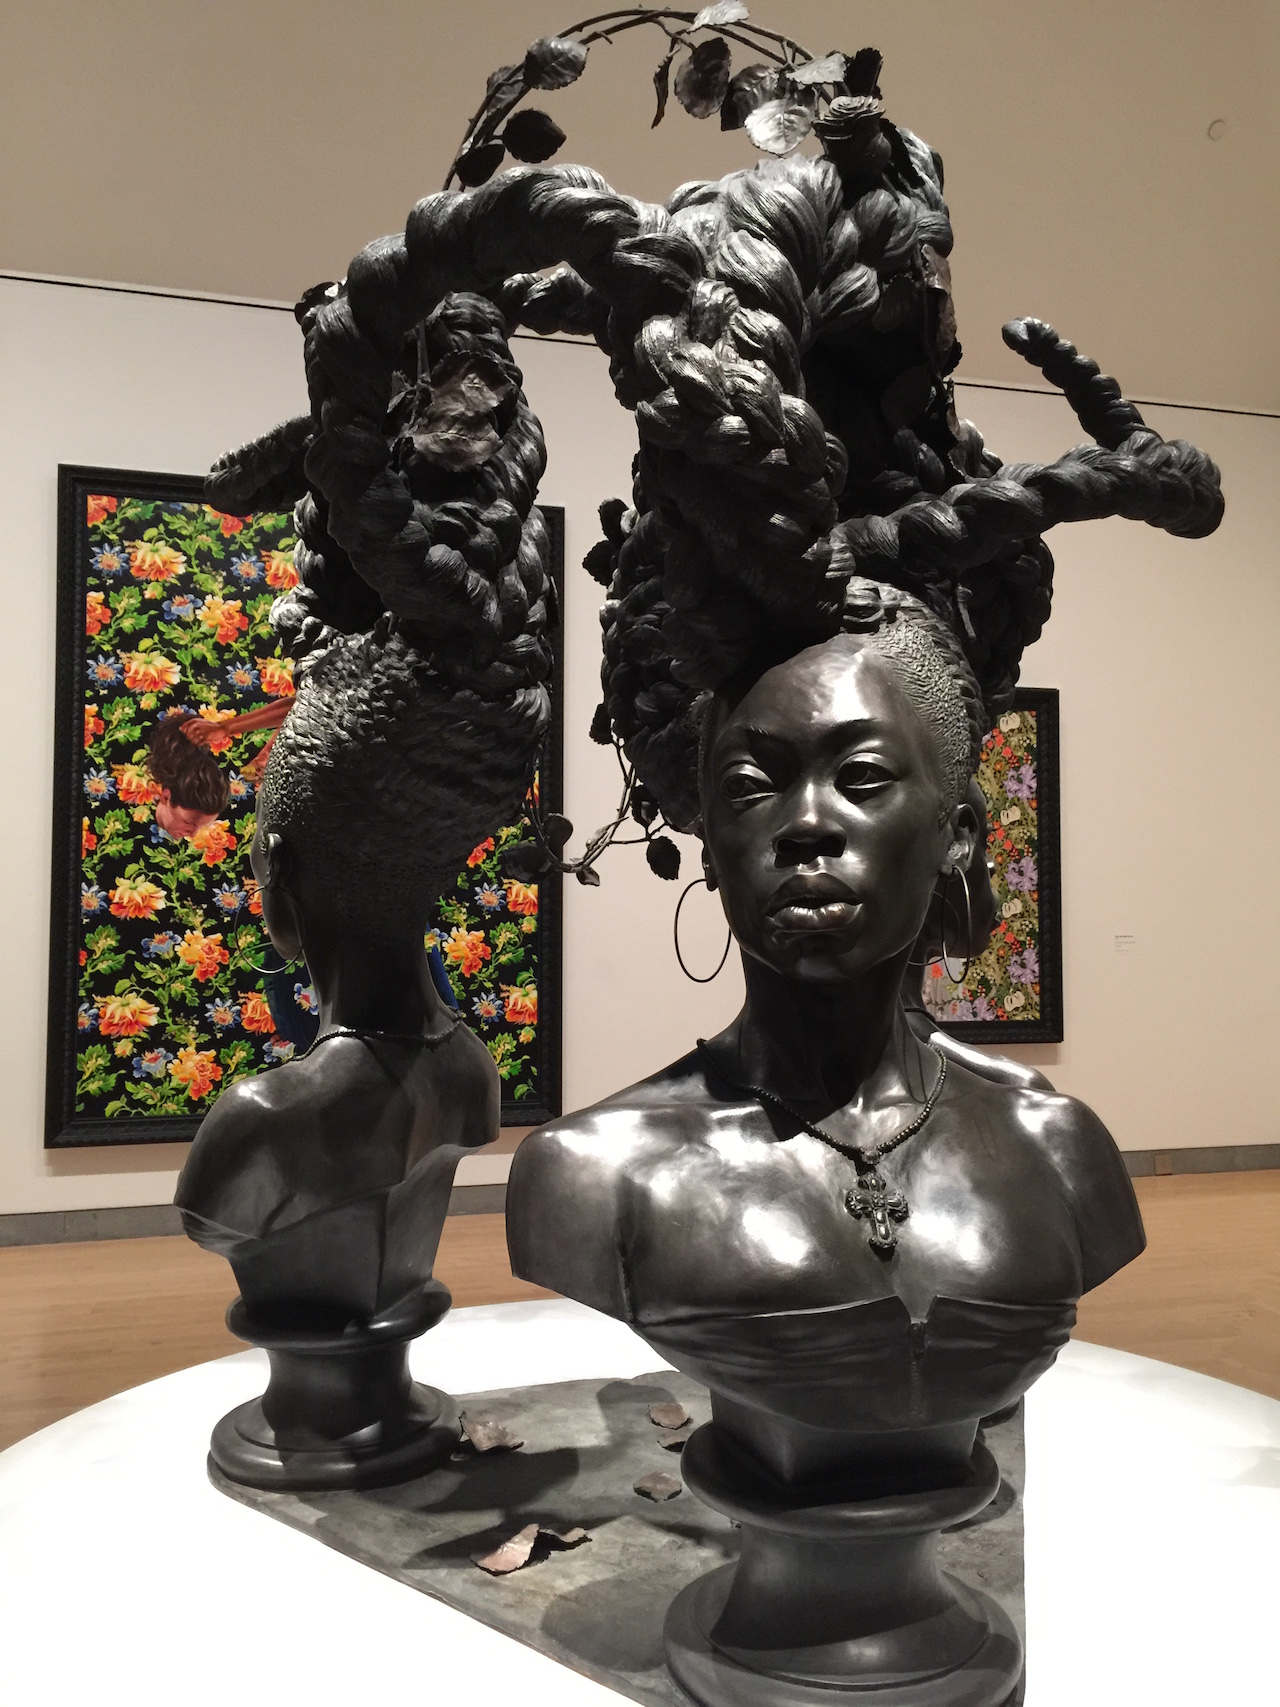 Bound by Kehinde Wiley